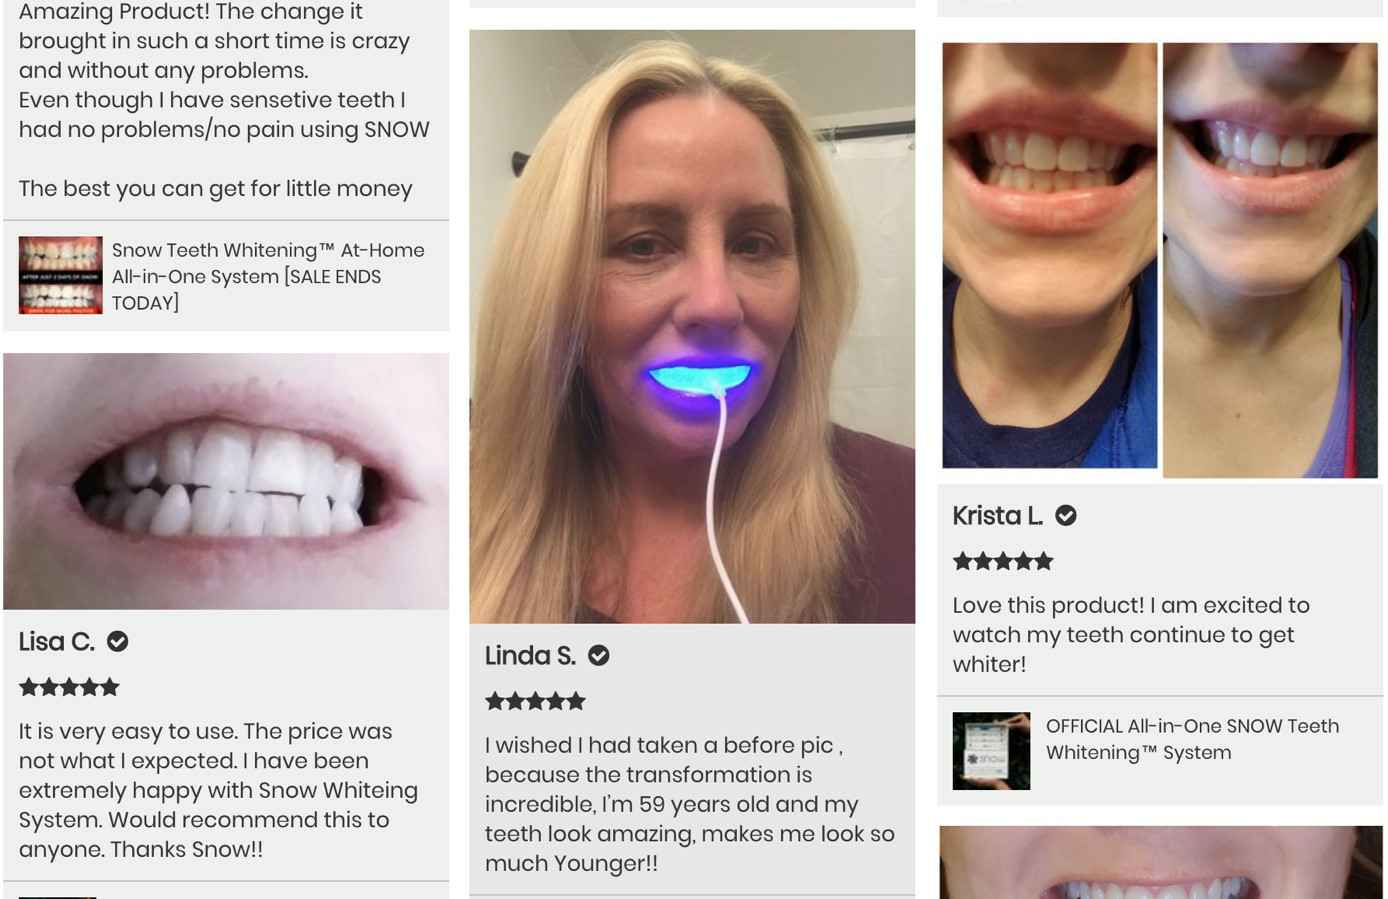 Snow Teeth Whitening Online Voucher Code Printables 100 Off